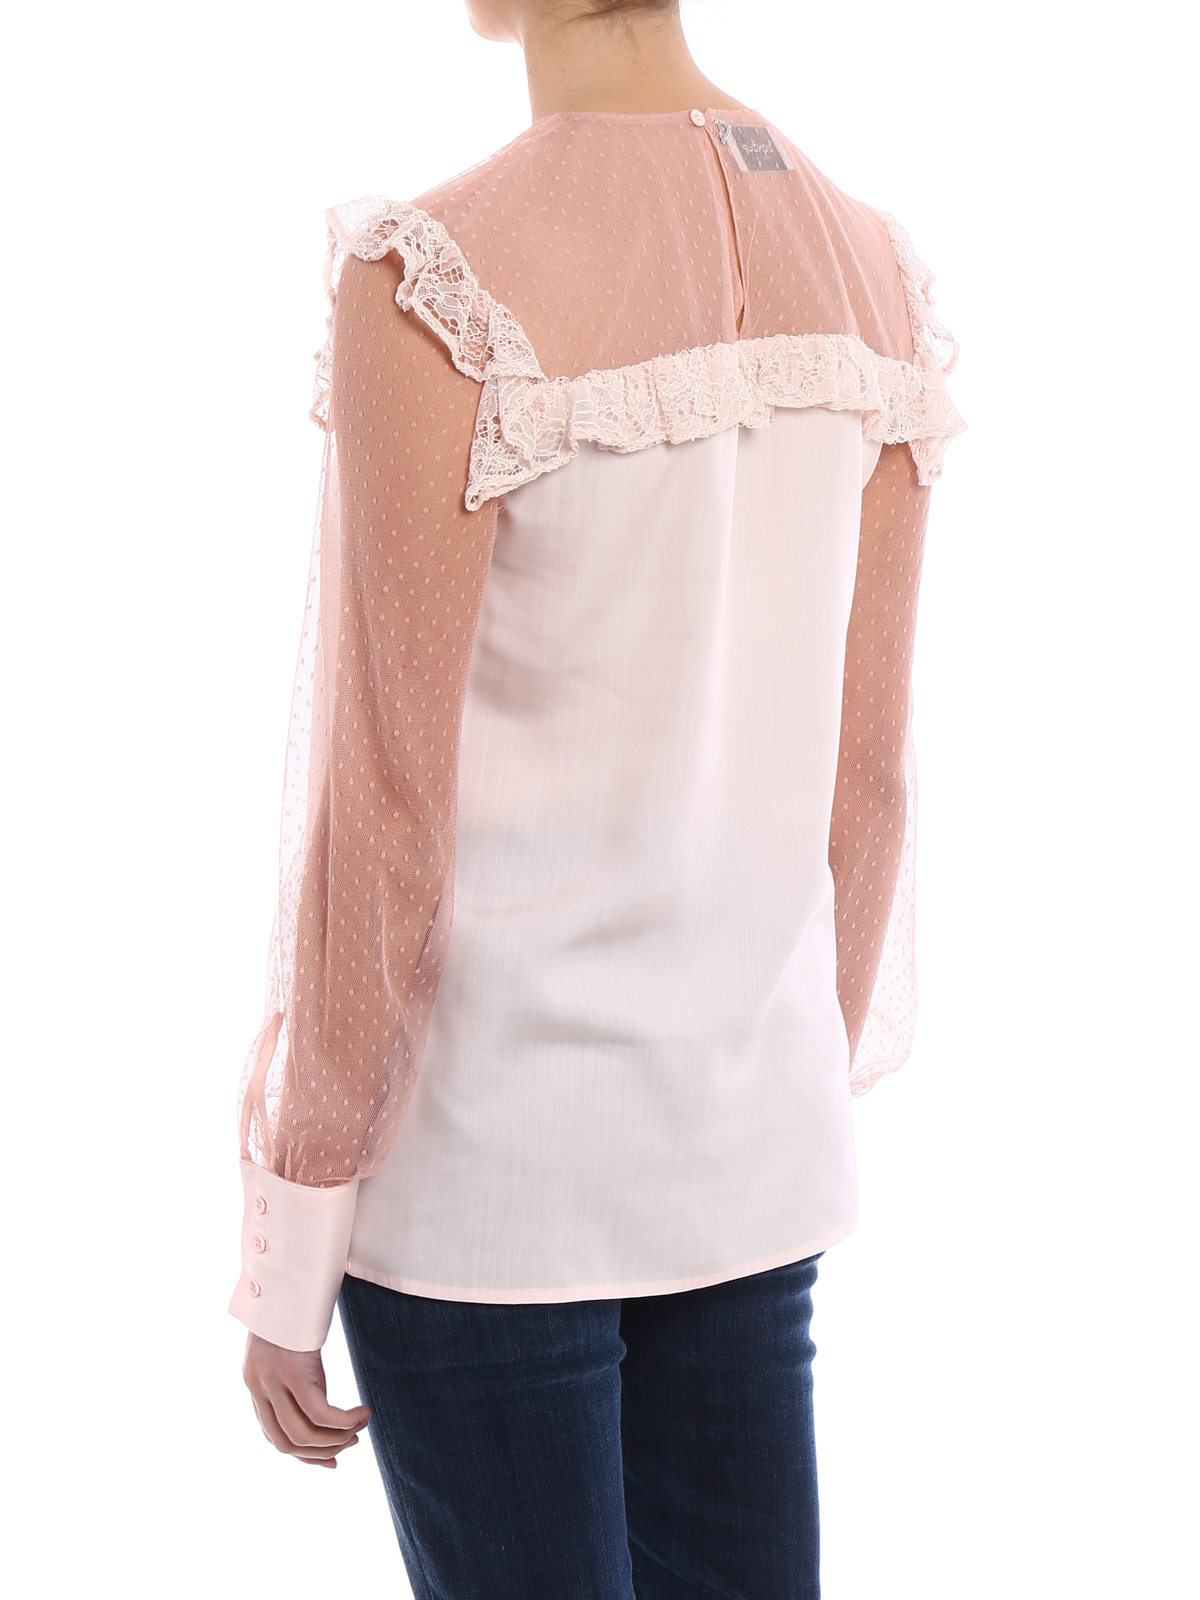 b67e9bedece6ae Dondup - Old lace style long sleeve blouse - blouses - C966ZF034DXXX510